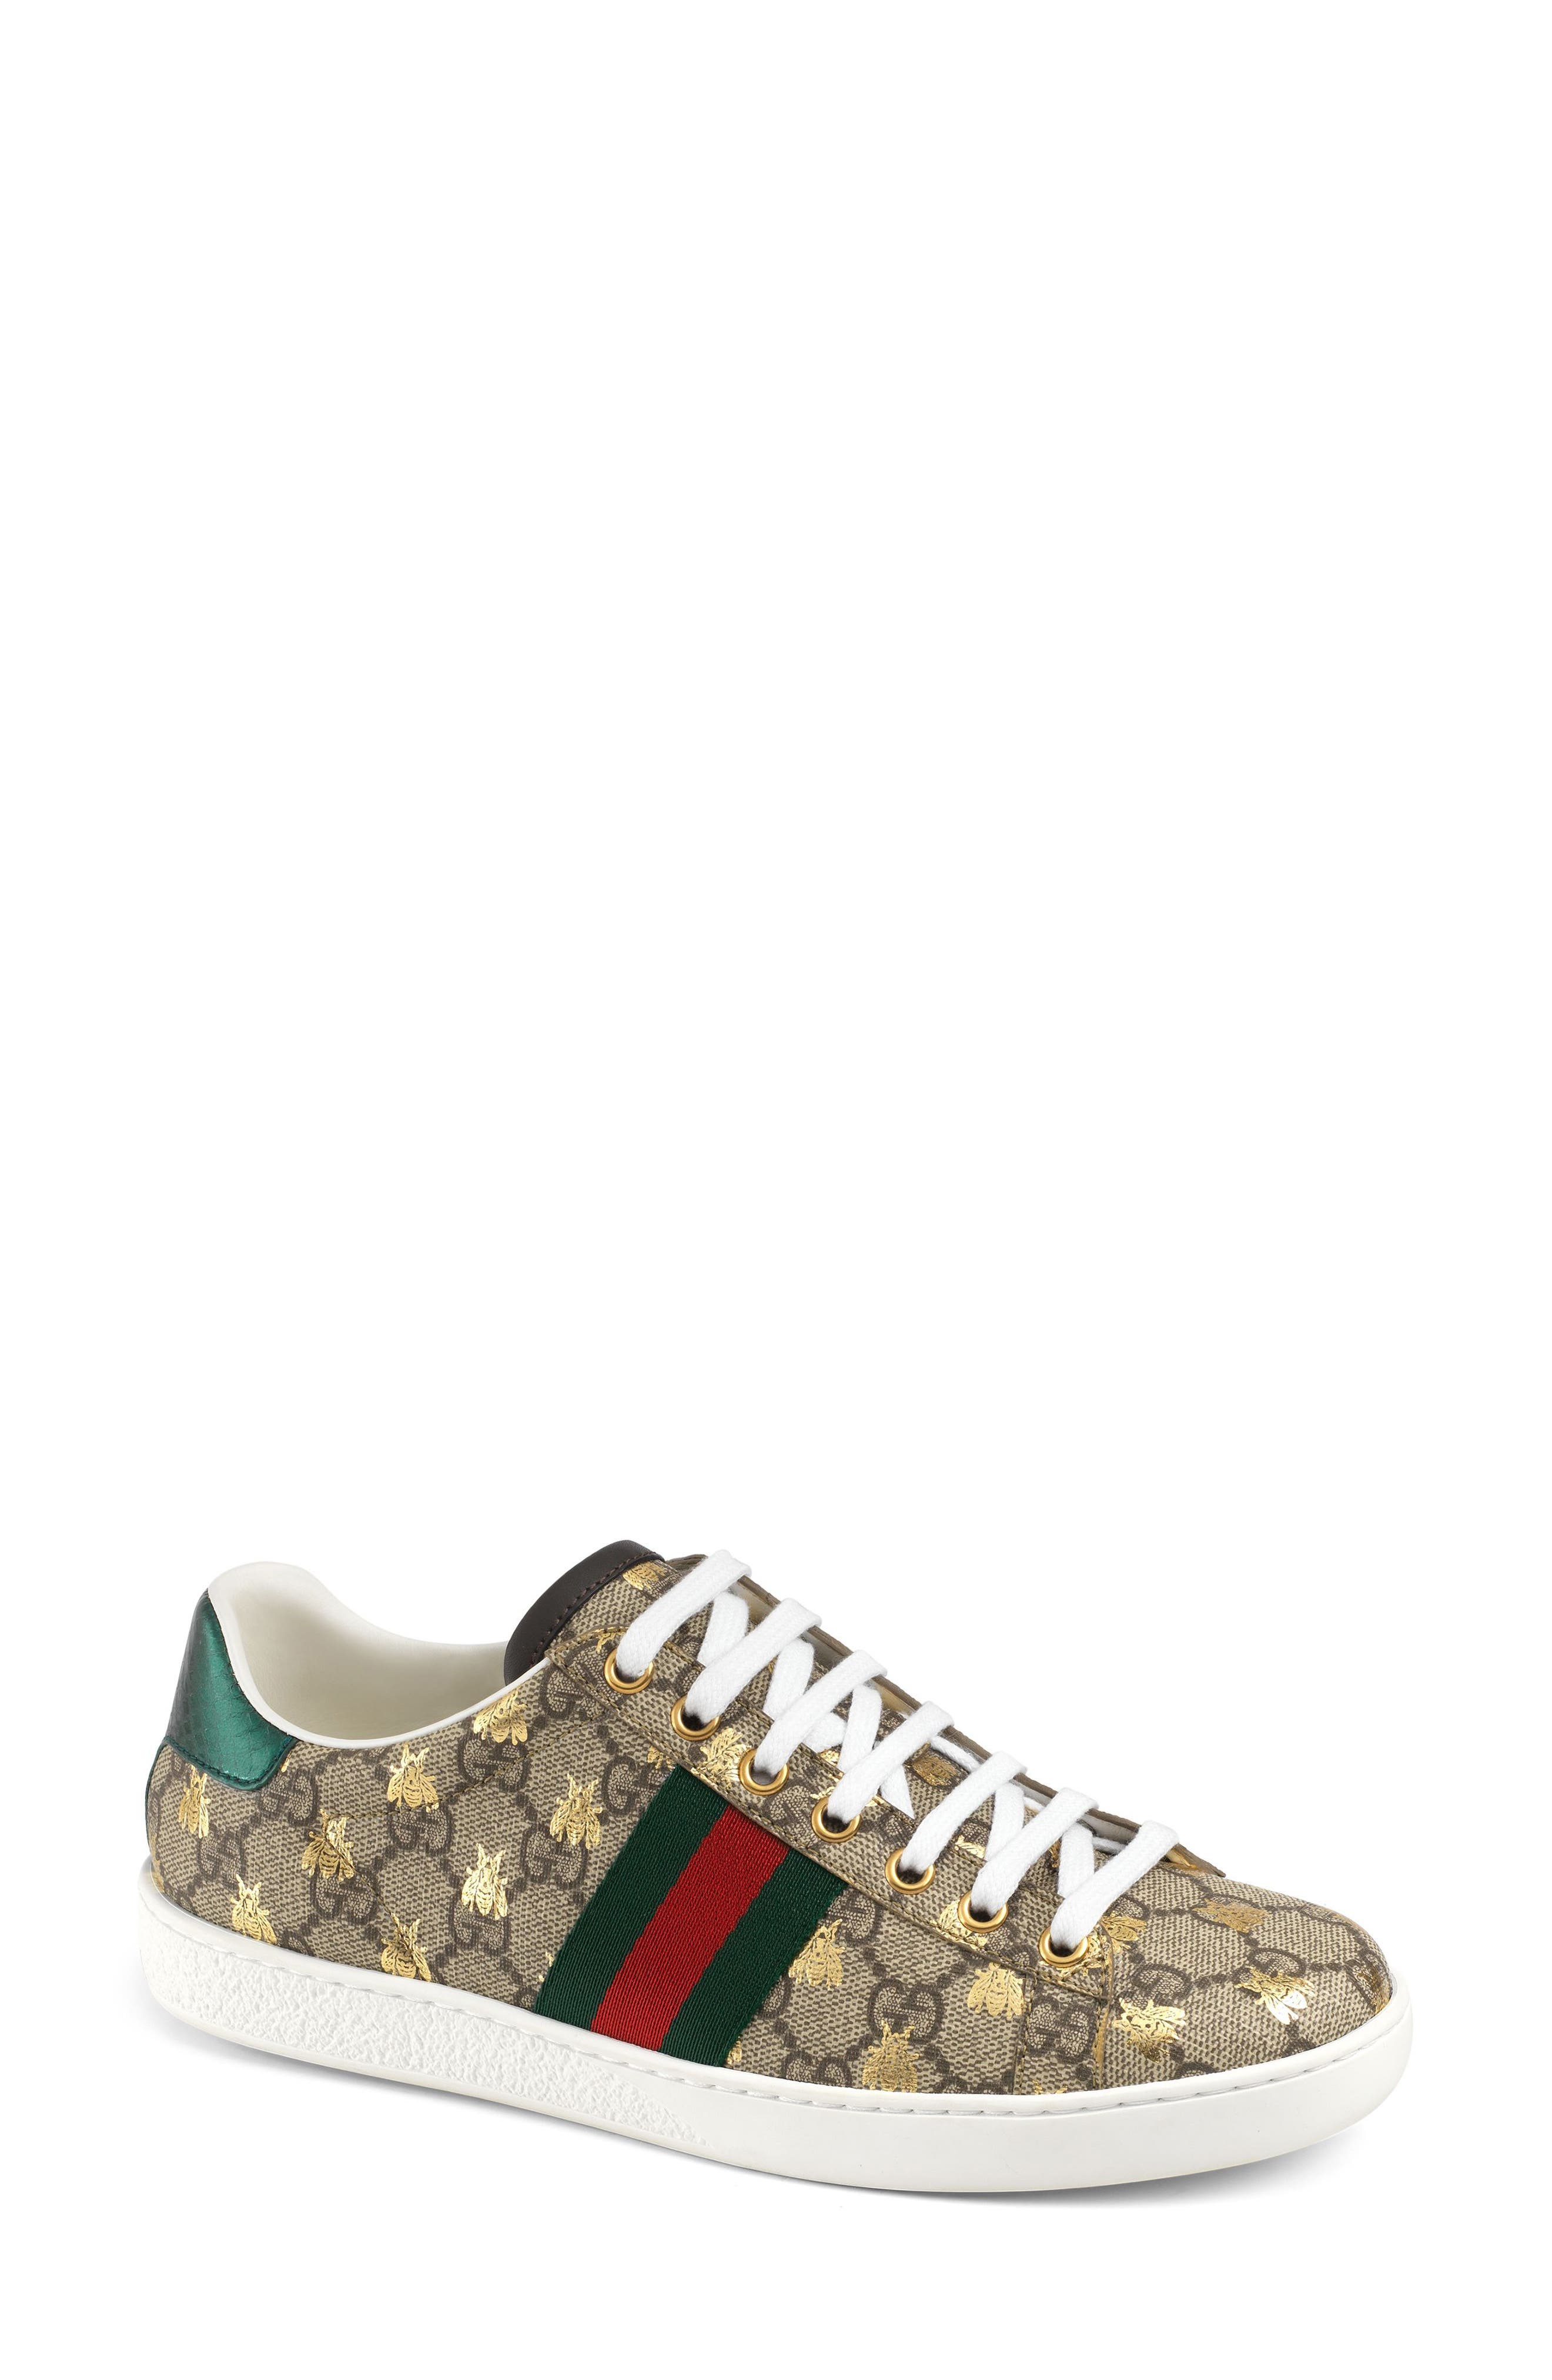 GUCCI New Ace Monogram Bee Sneaker, Main, color, BEIGE/ GOLD